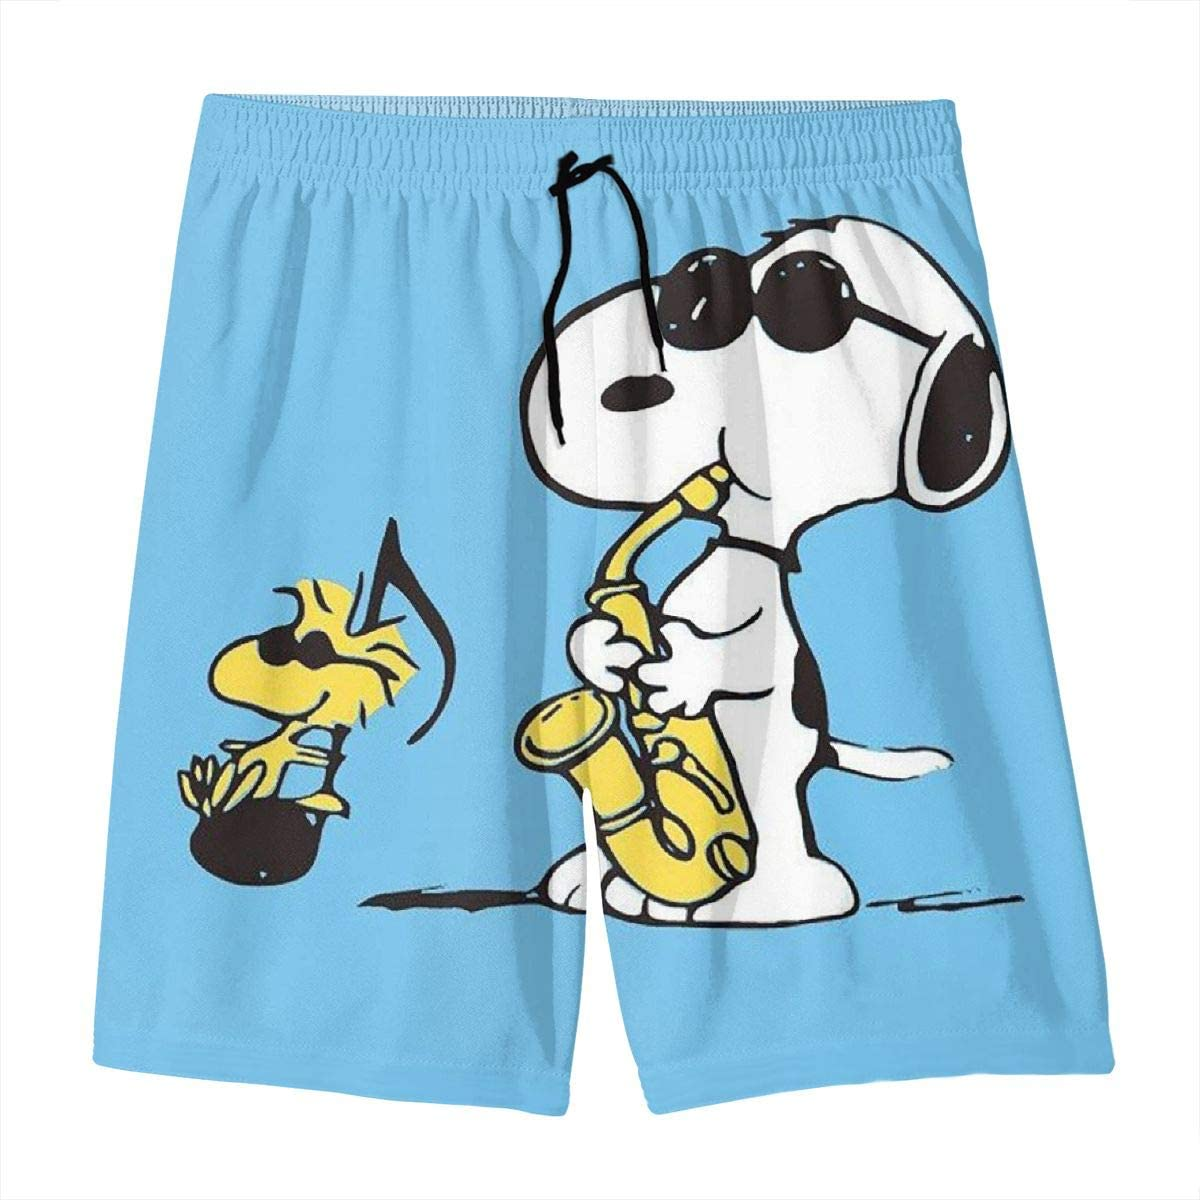 OINUNTN Swim Trunks Snoopy Singing Quick Dry Beach Board Shorts Bathing Suit with Side Pockets for Teen Boys